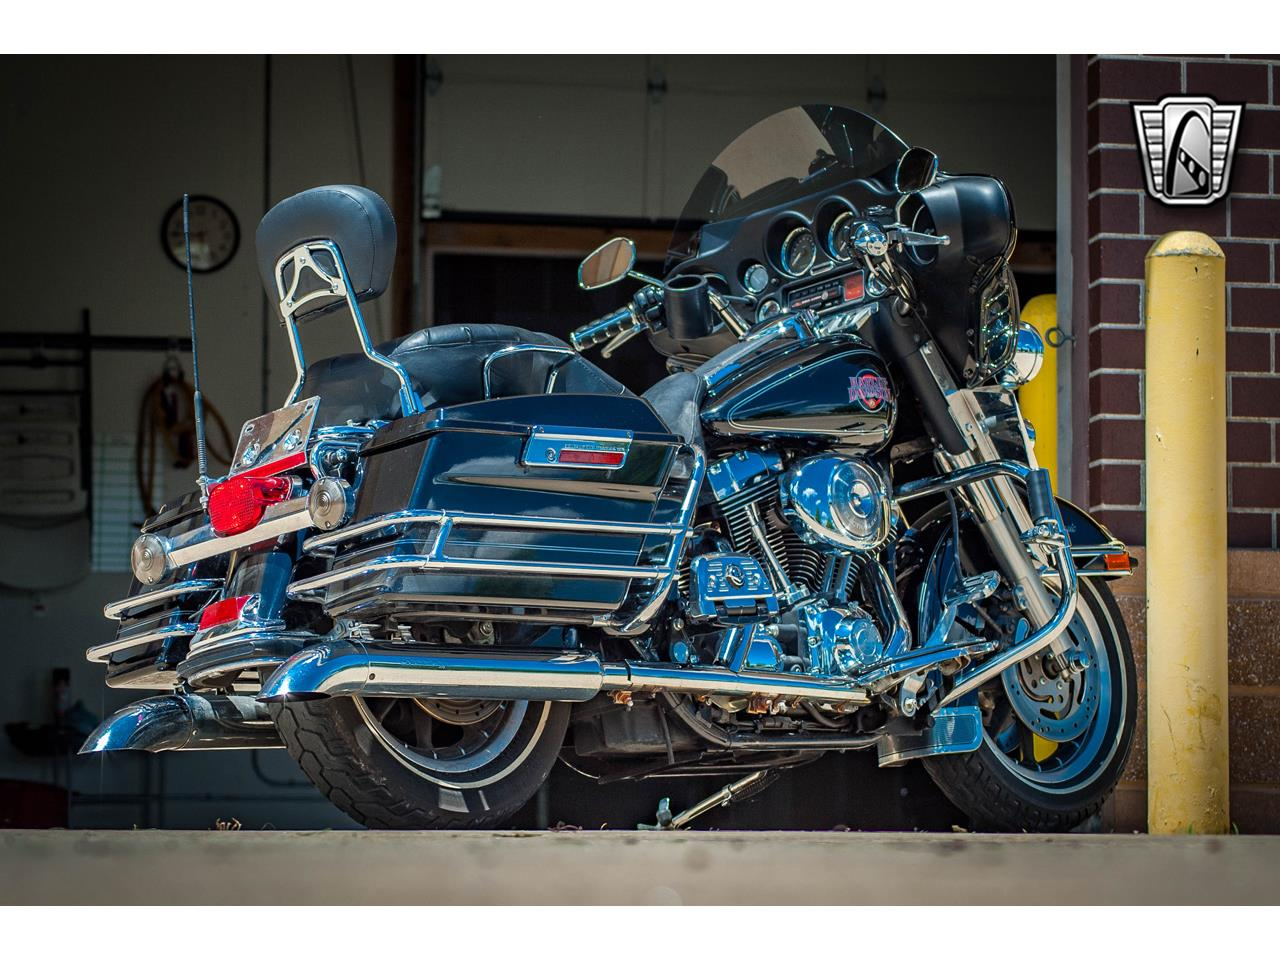 Large Picture of '04 Motorcycle located in O'Fallon Illinois Offered by Gateway Classic Cars - St. Louis - QD6F